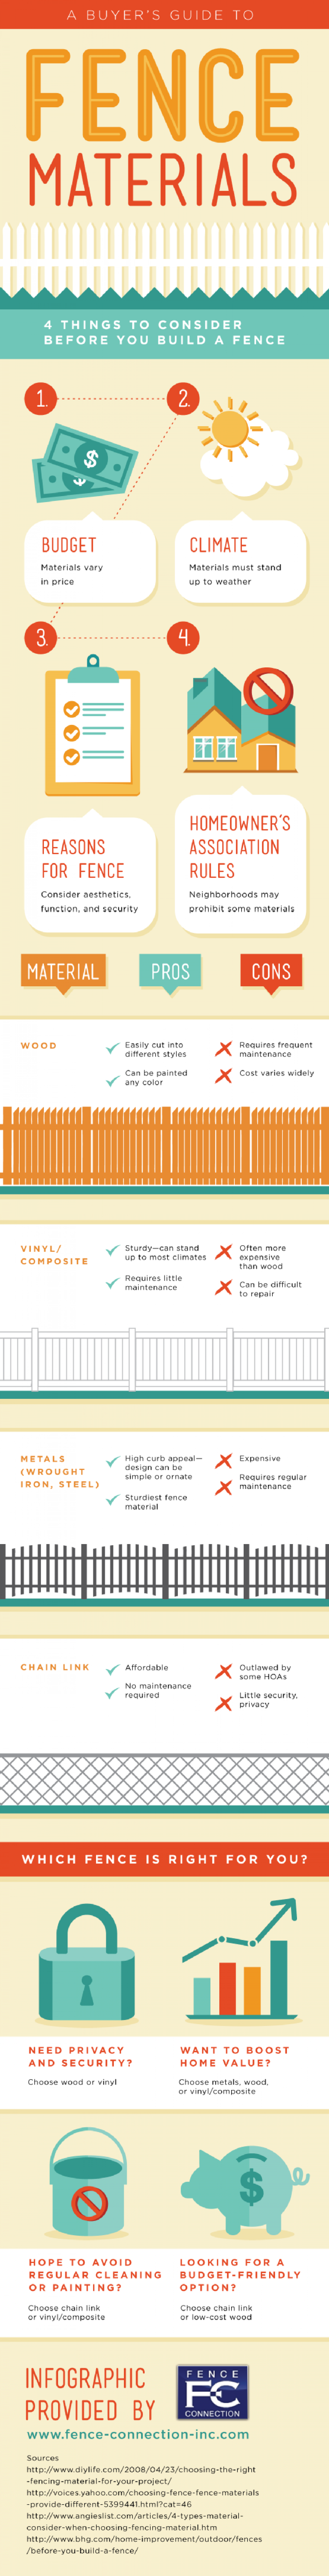 A Buyer's Guide to Fence Materials Infographic